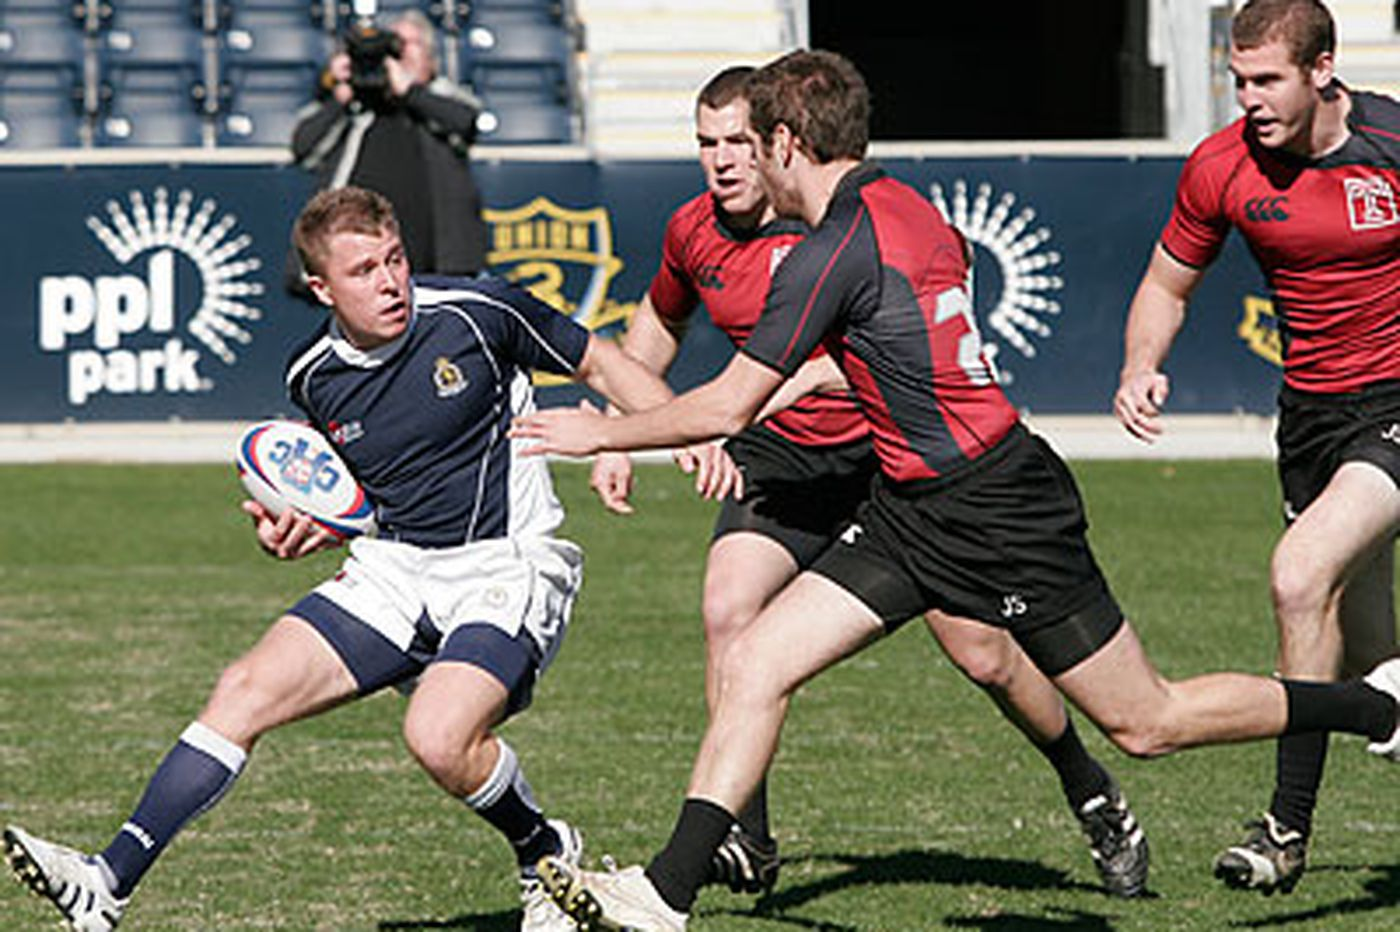 Once ragtag, Temple rugby players playing with pride